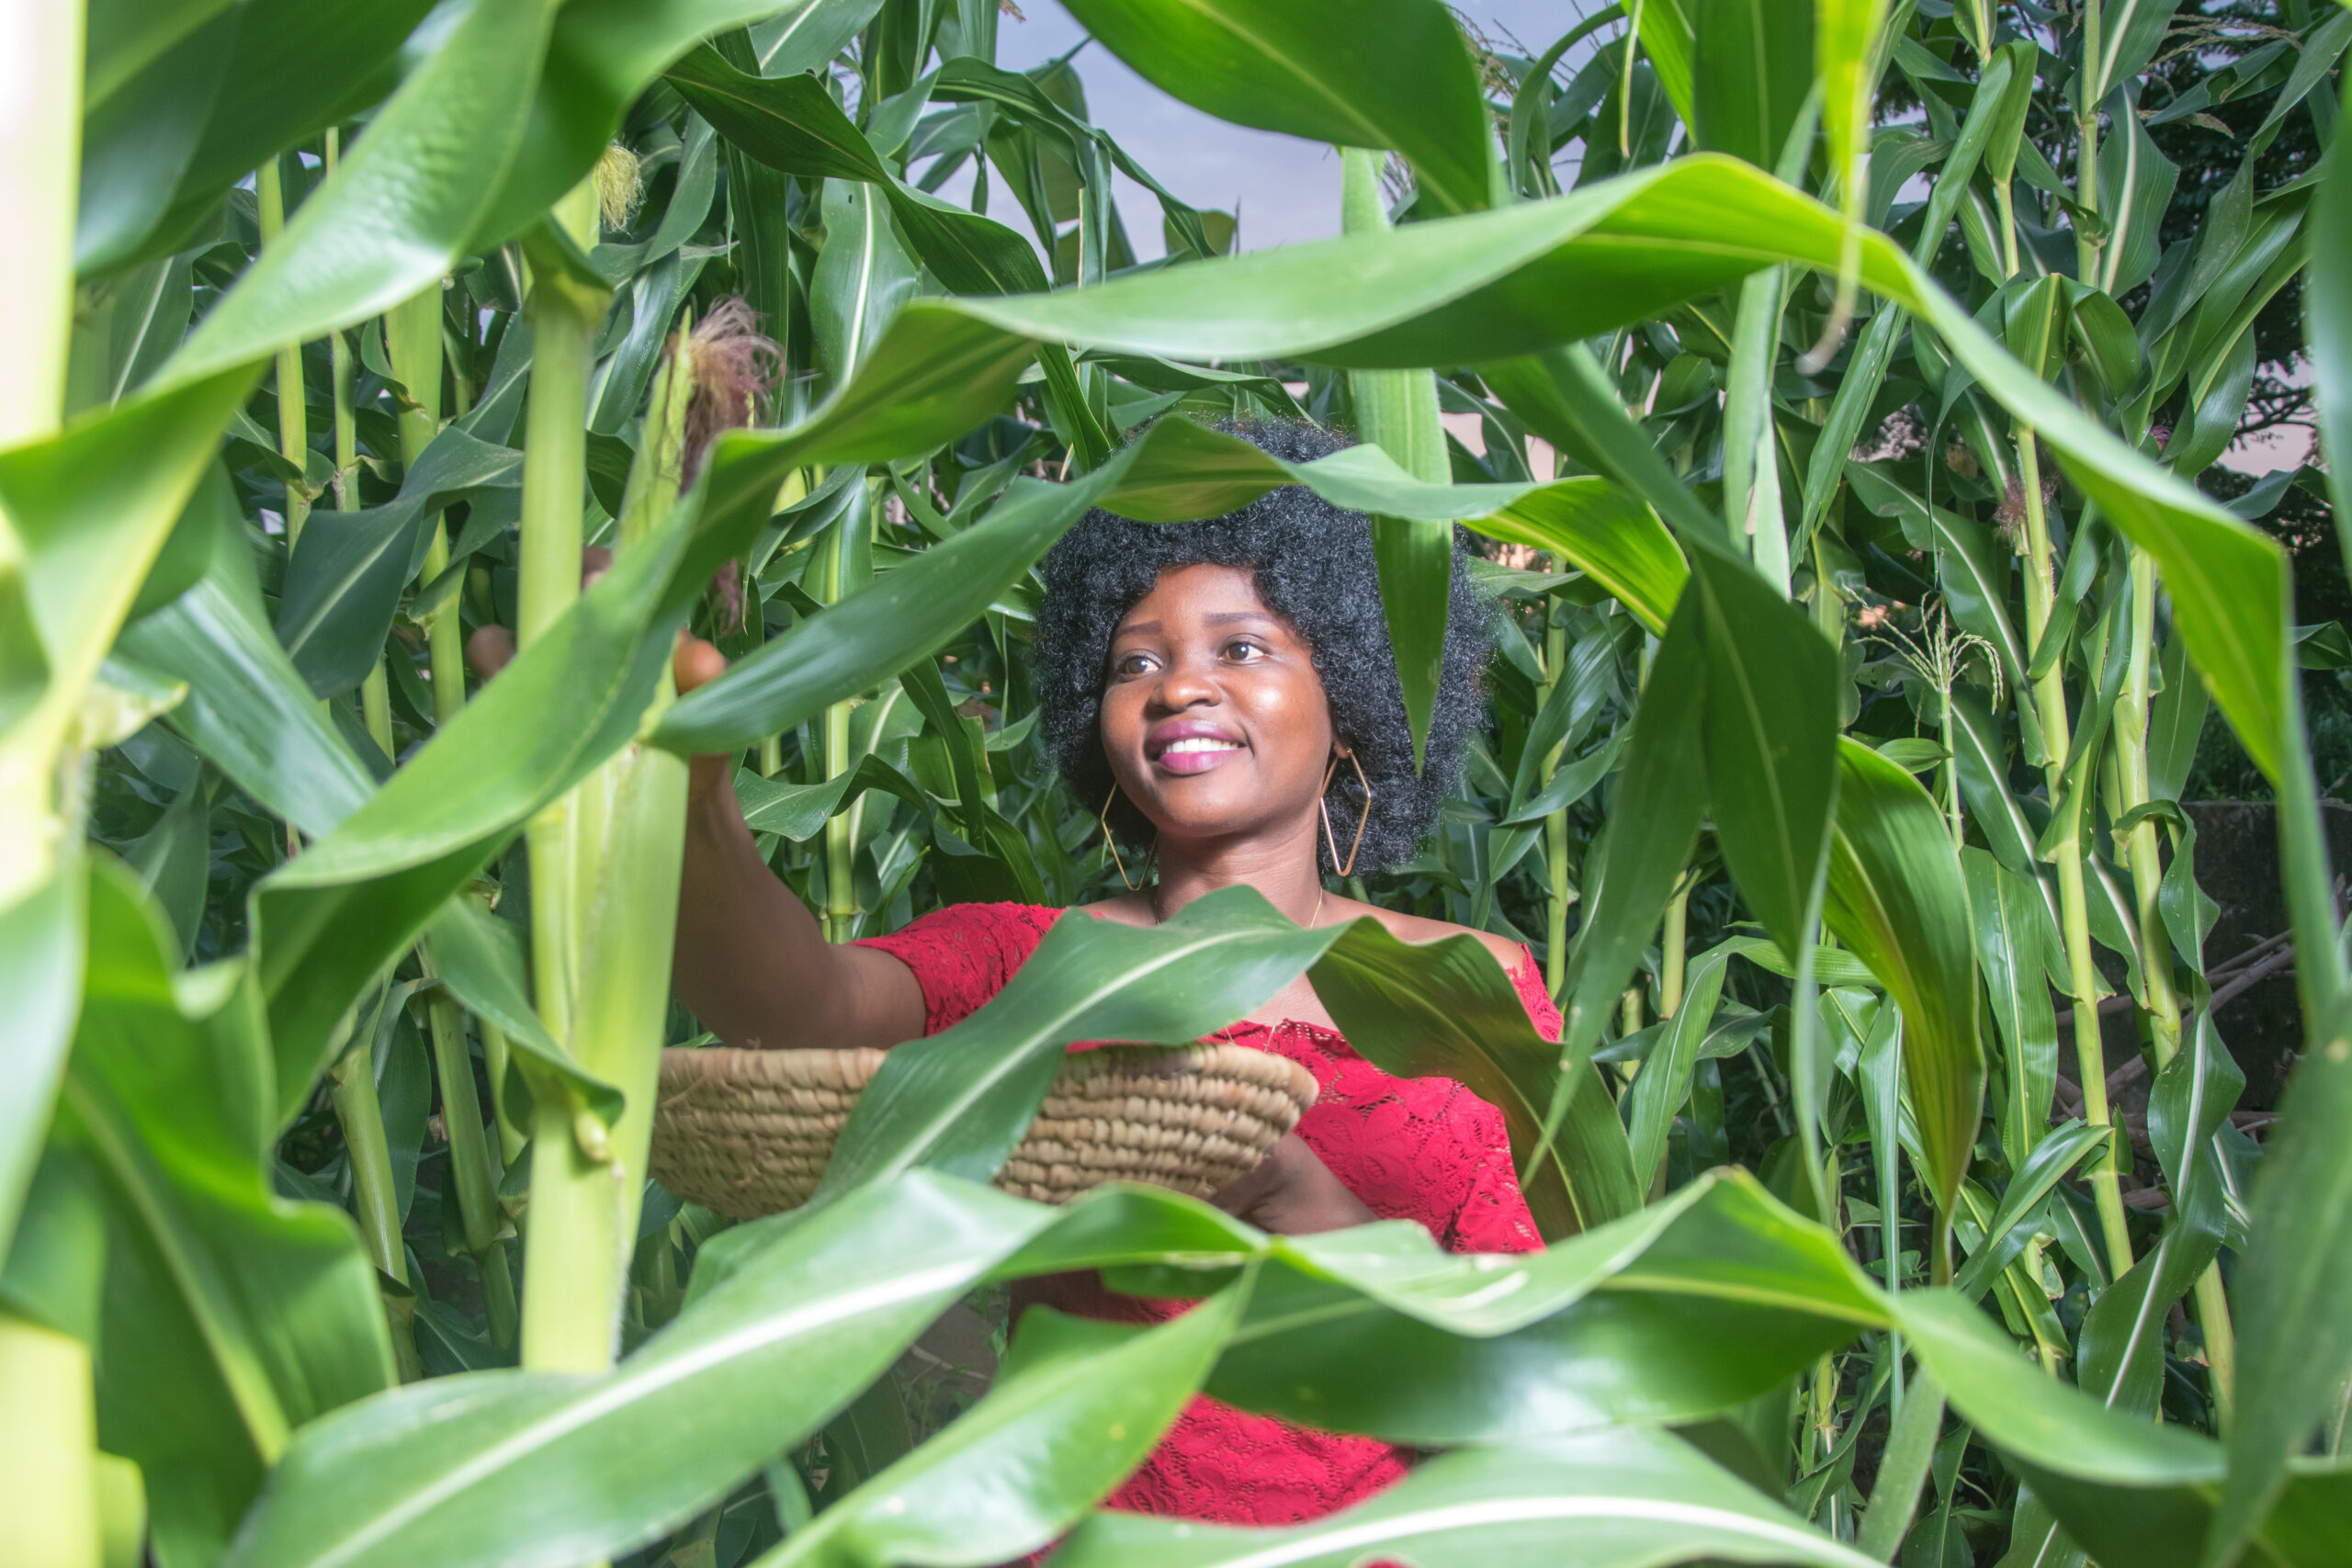 Local mom is farming to turning her passion for farming into opportunity to alleviate poverty and hunger